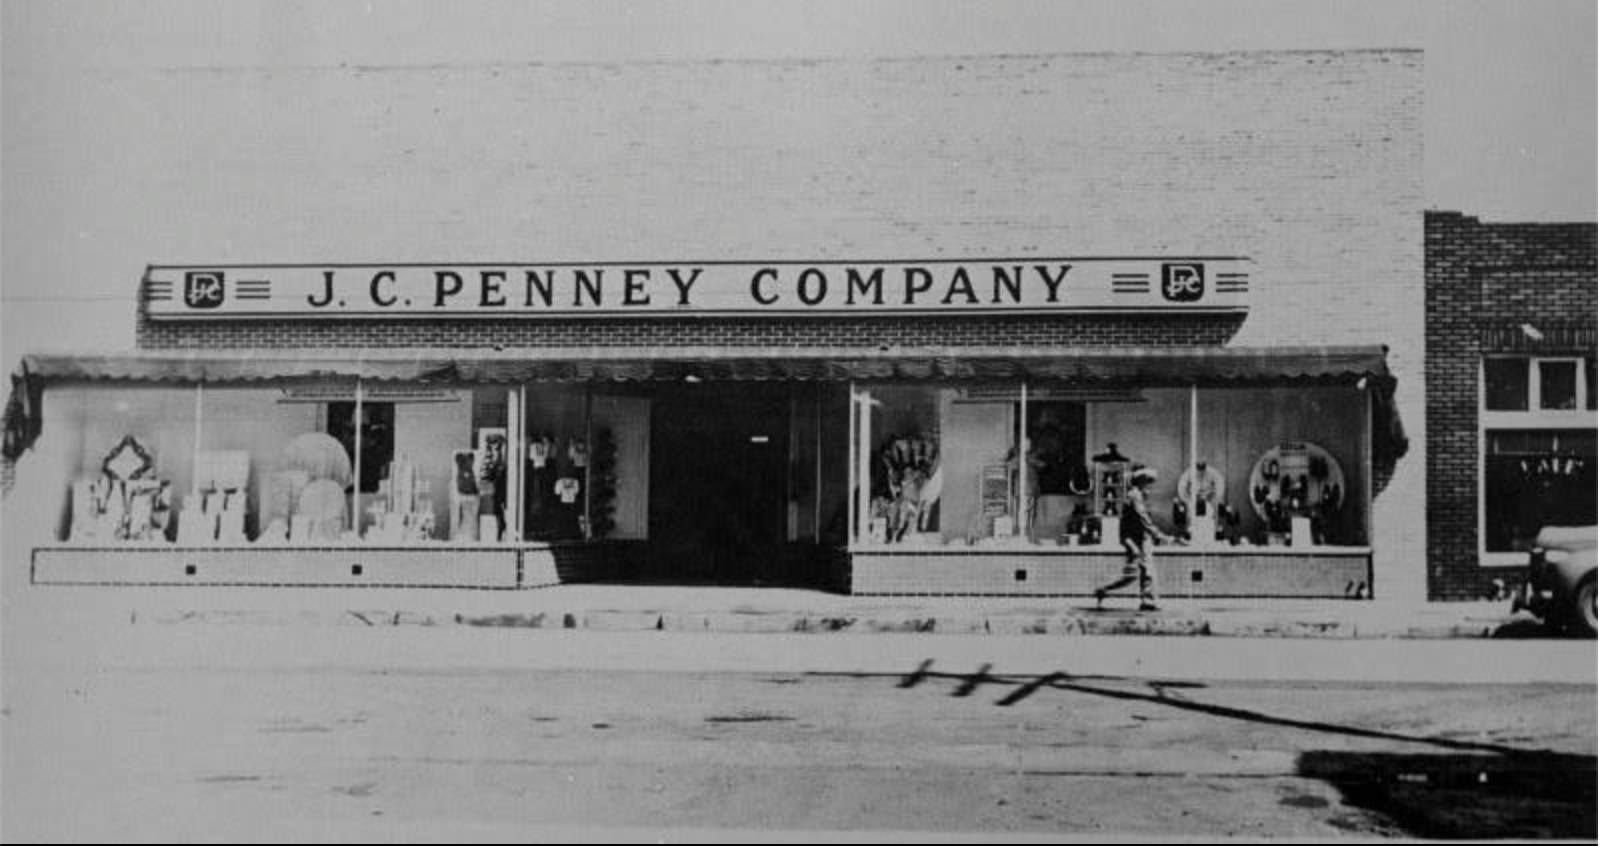 Jc penney department store in midvale about 1950 salt